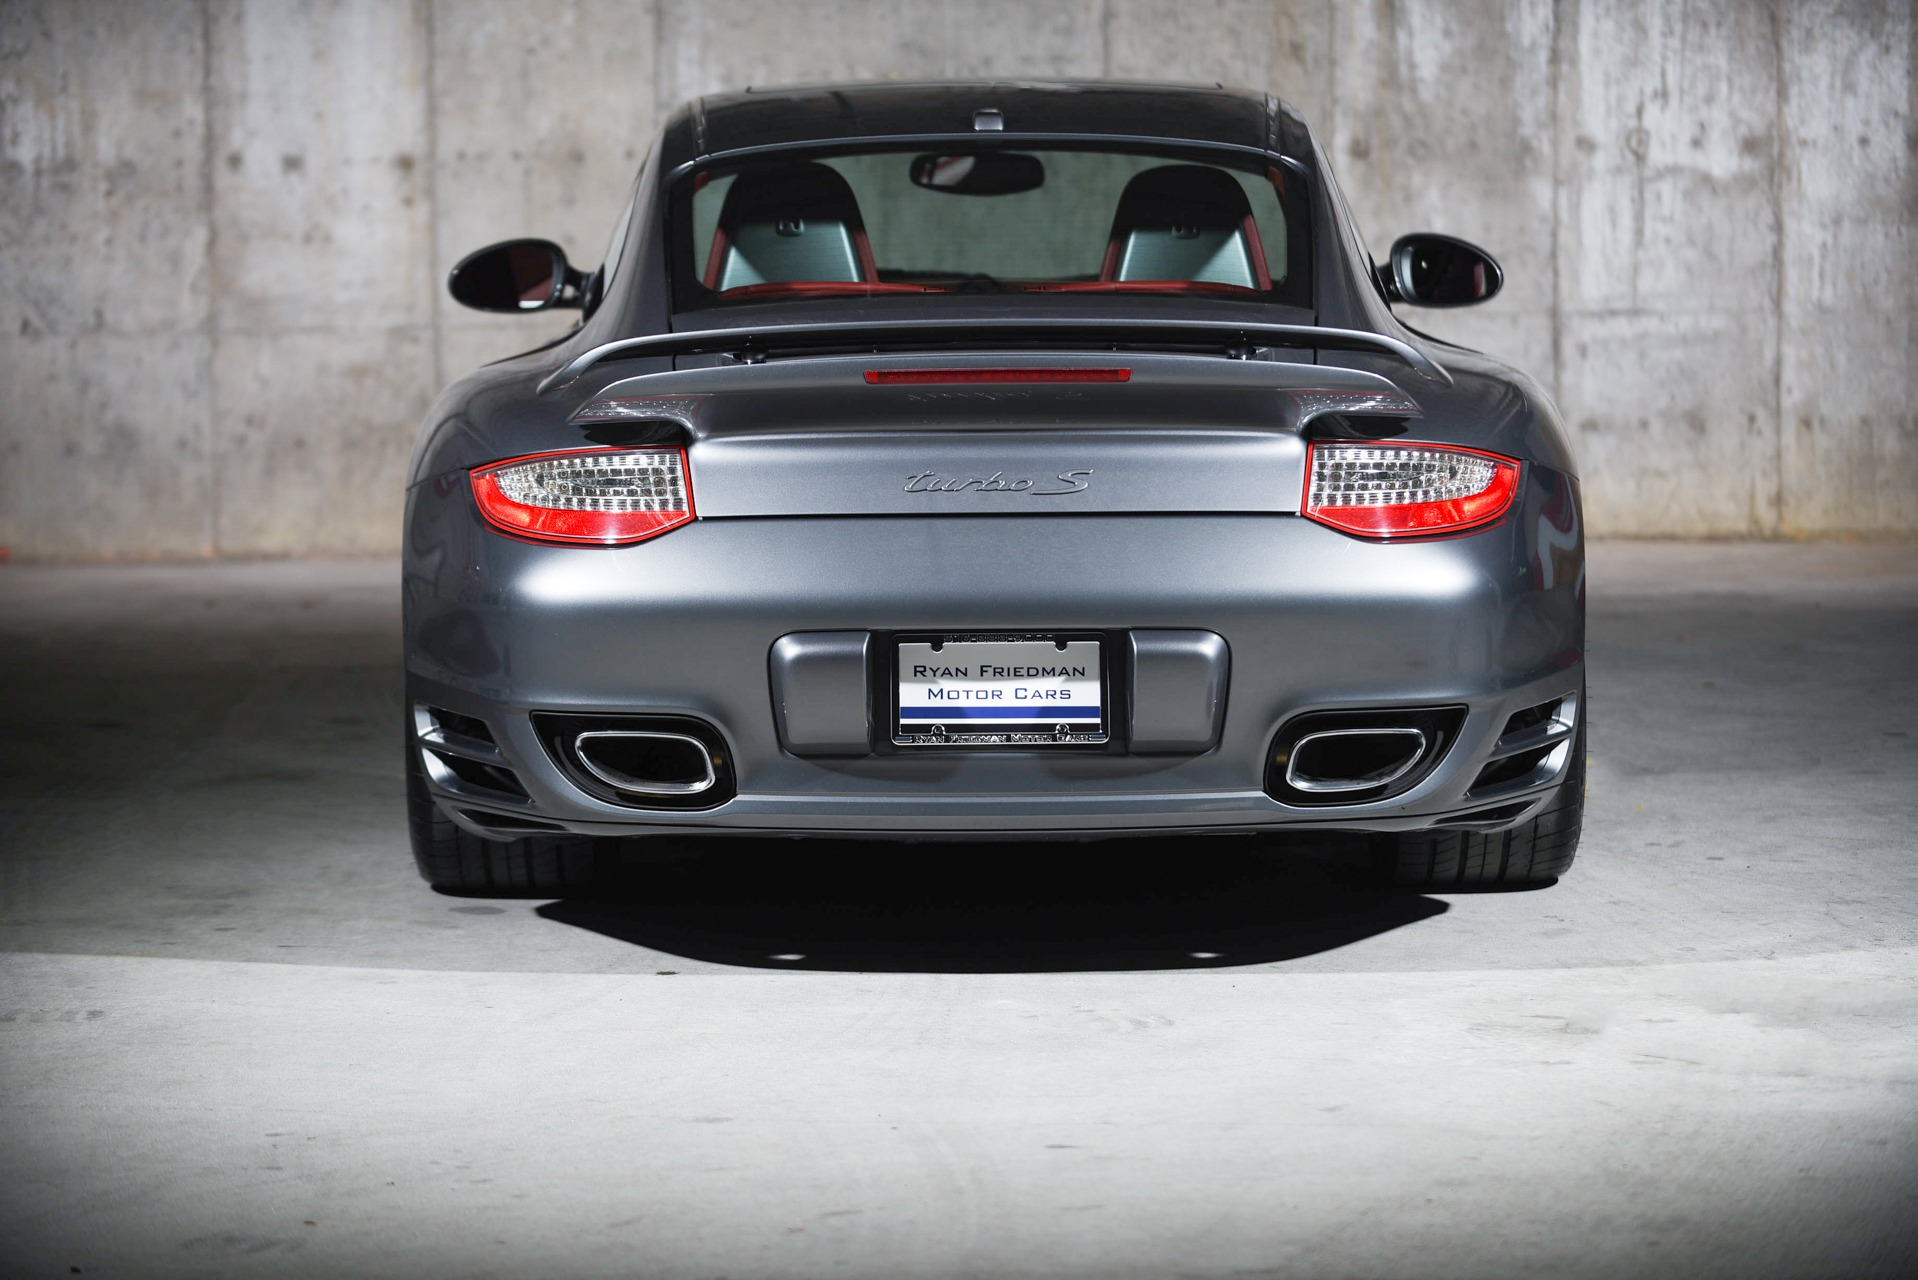 Used 2012 Porsche 911 Turbo S | Valley Stream, NY